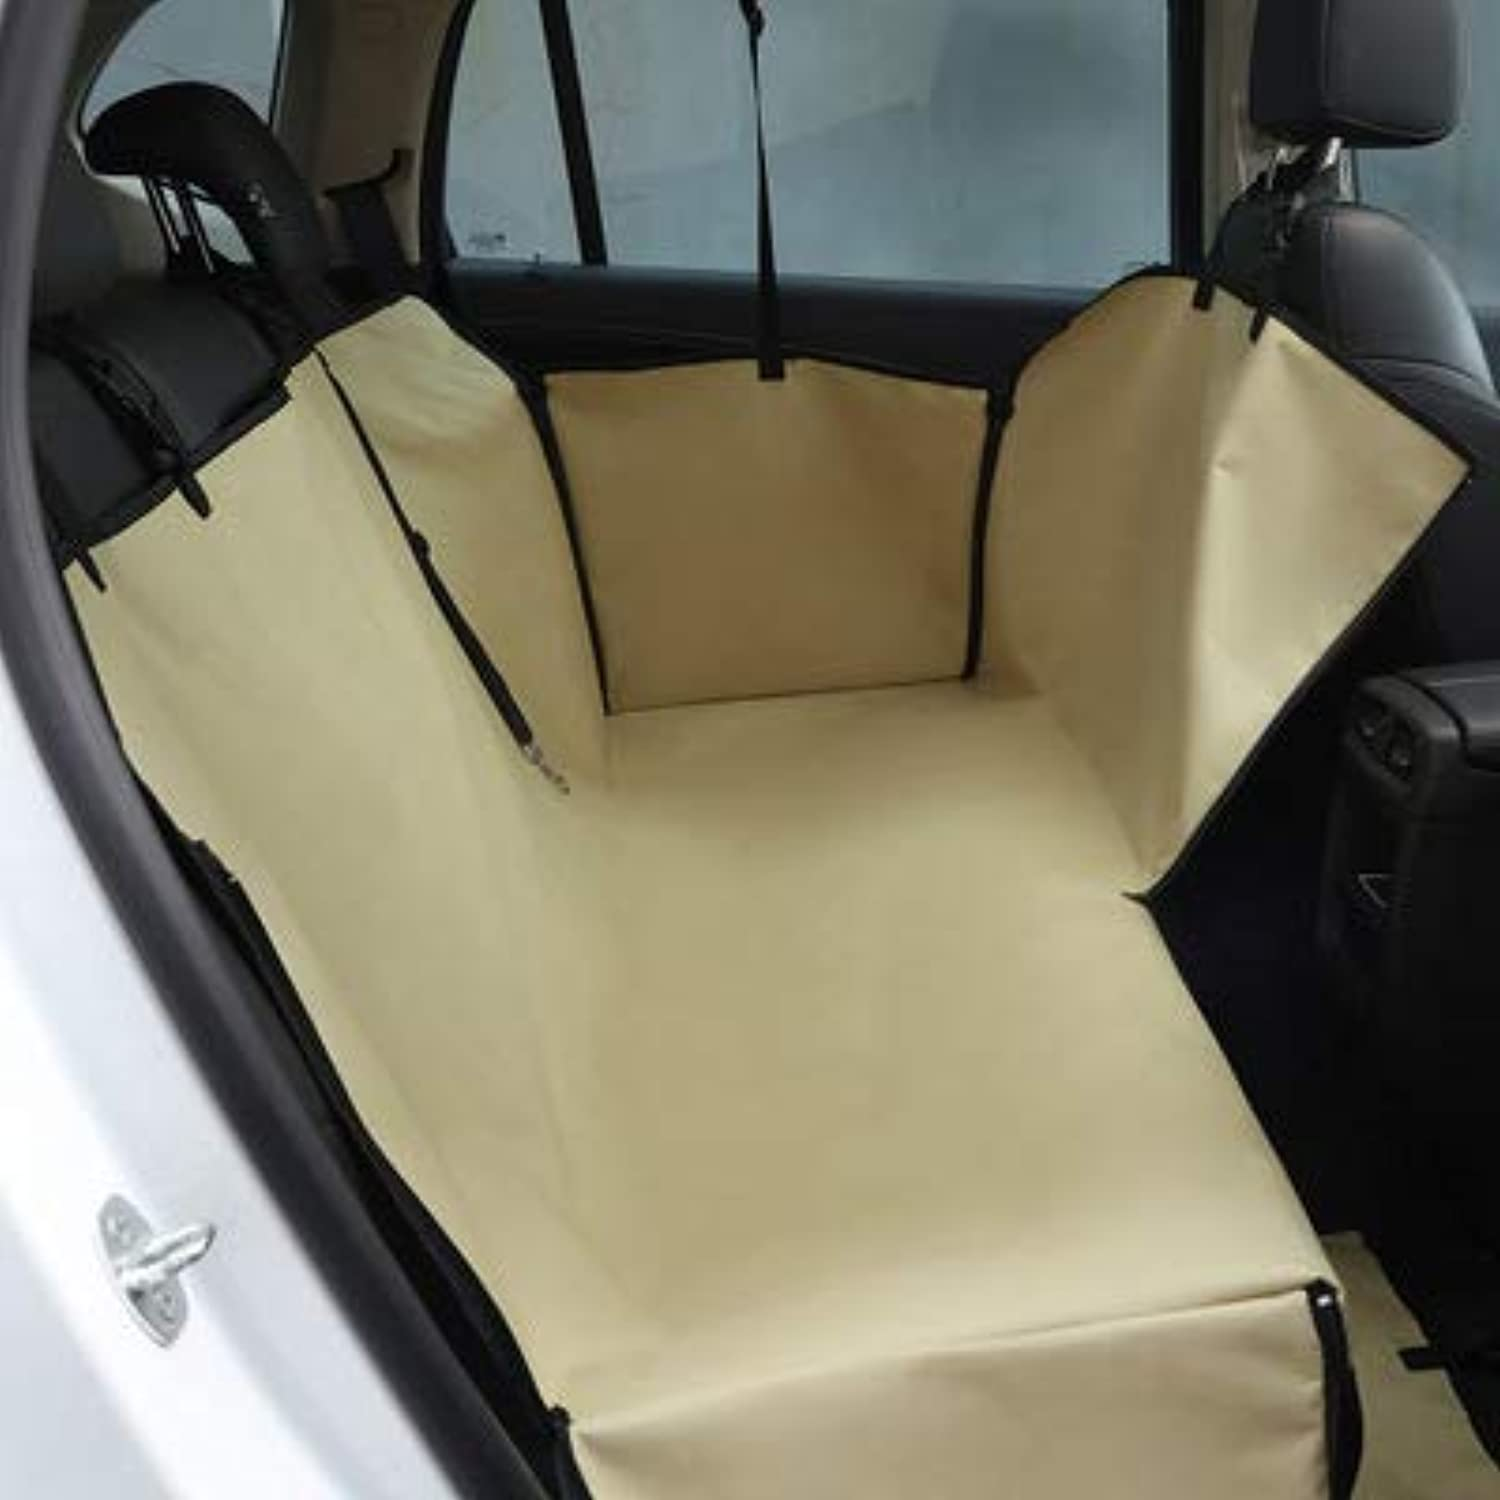 Car Rear Seat Mat for Dogs Boot Liner Bumper Predector Universal for All Kinds of Cars Back Seat Car Boot Predector Cover Waterproof 130  150  55Cm